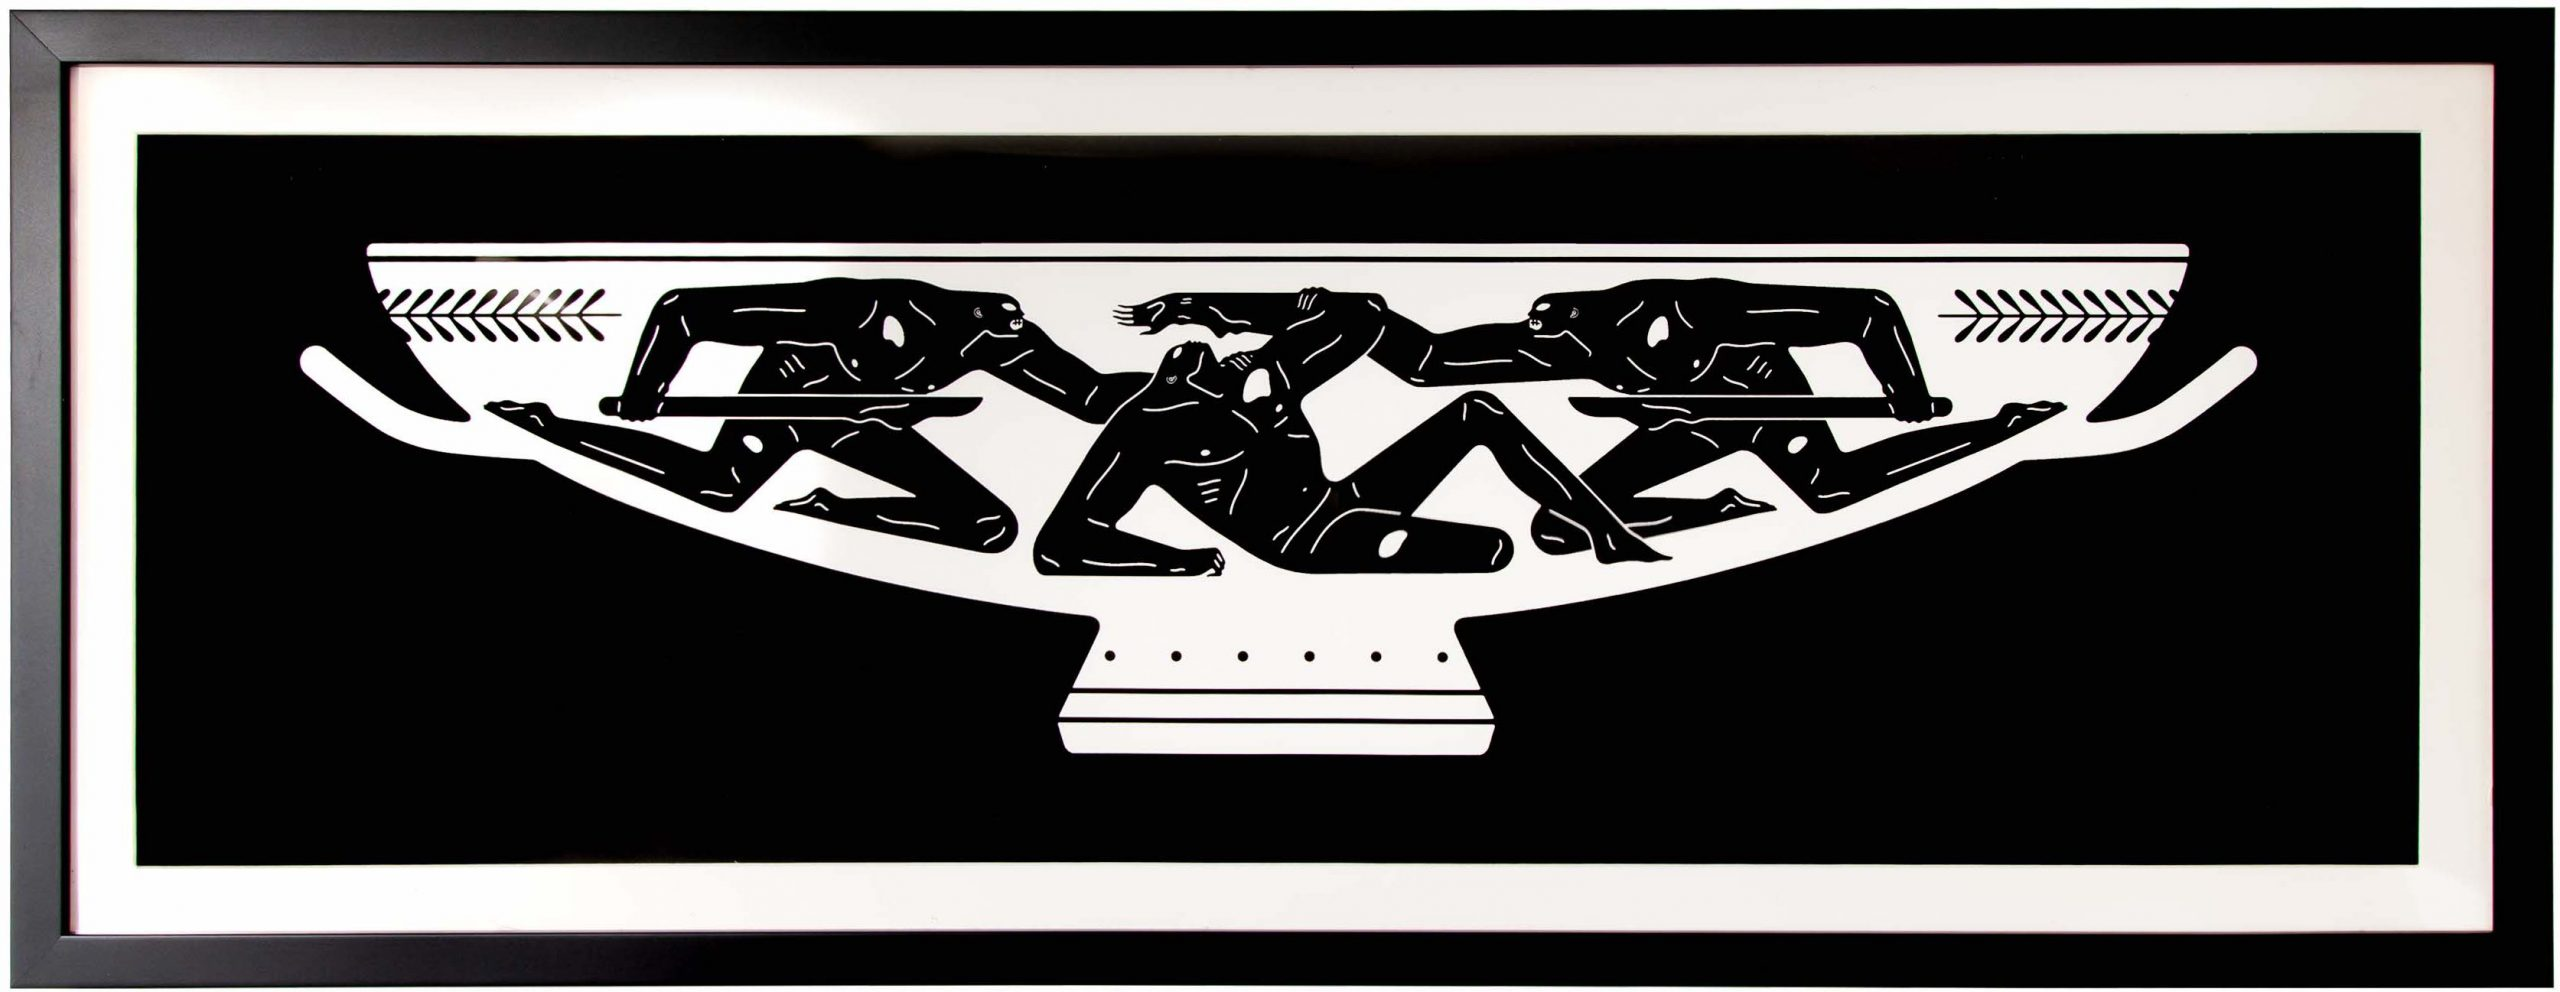 Kylix by Cleon Peterson